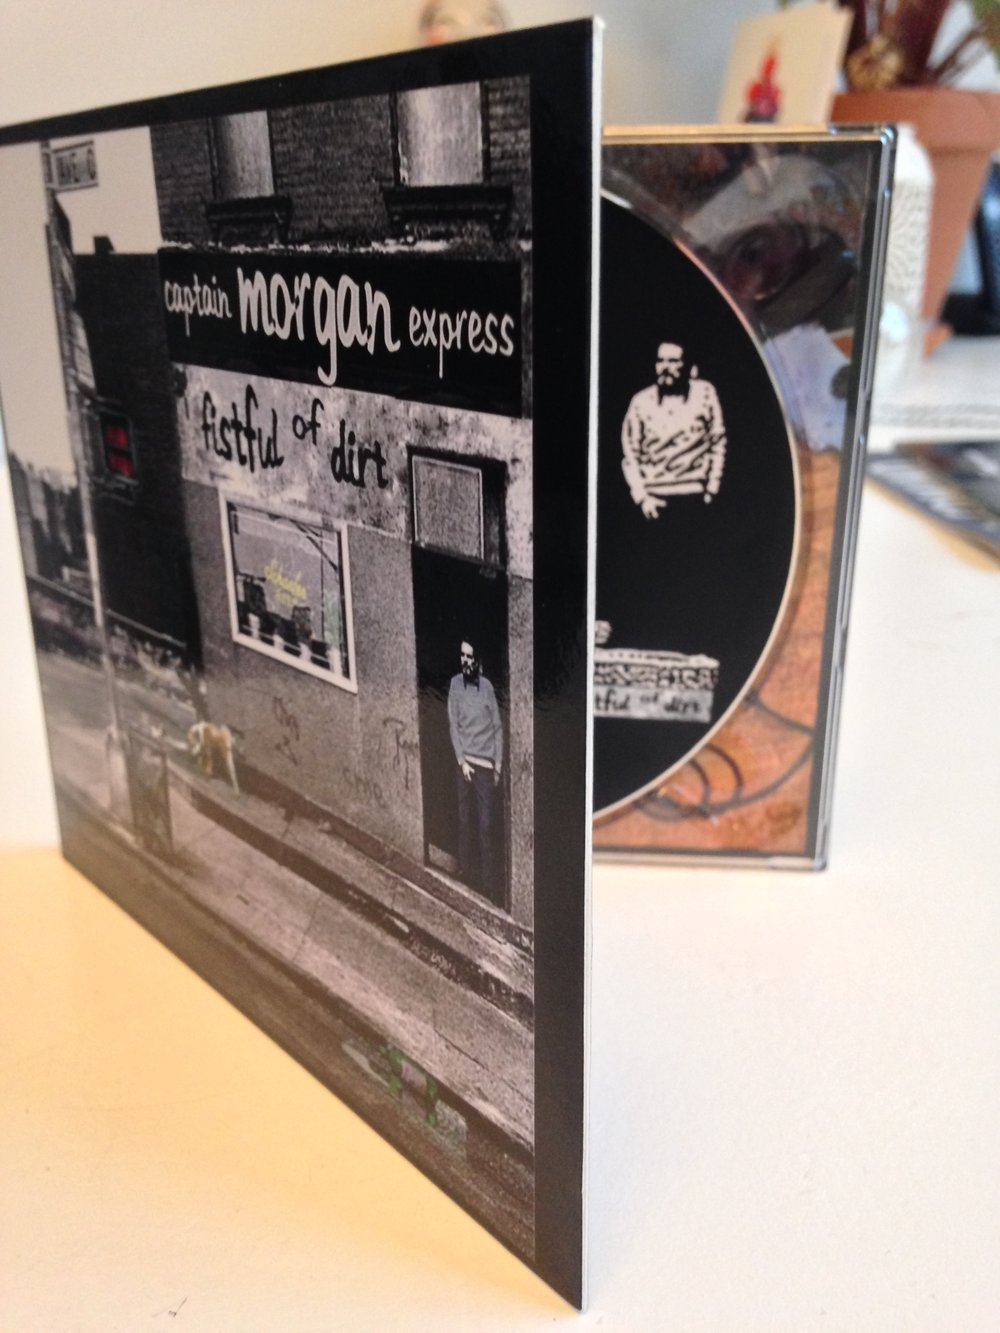 CD Captain Morgan Express - Fistful of Dirt, € 10,= incl. verzendkosten.